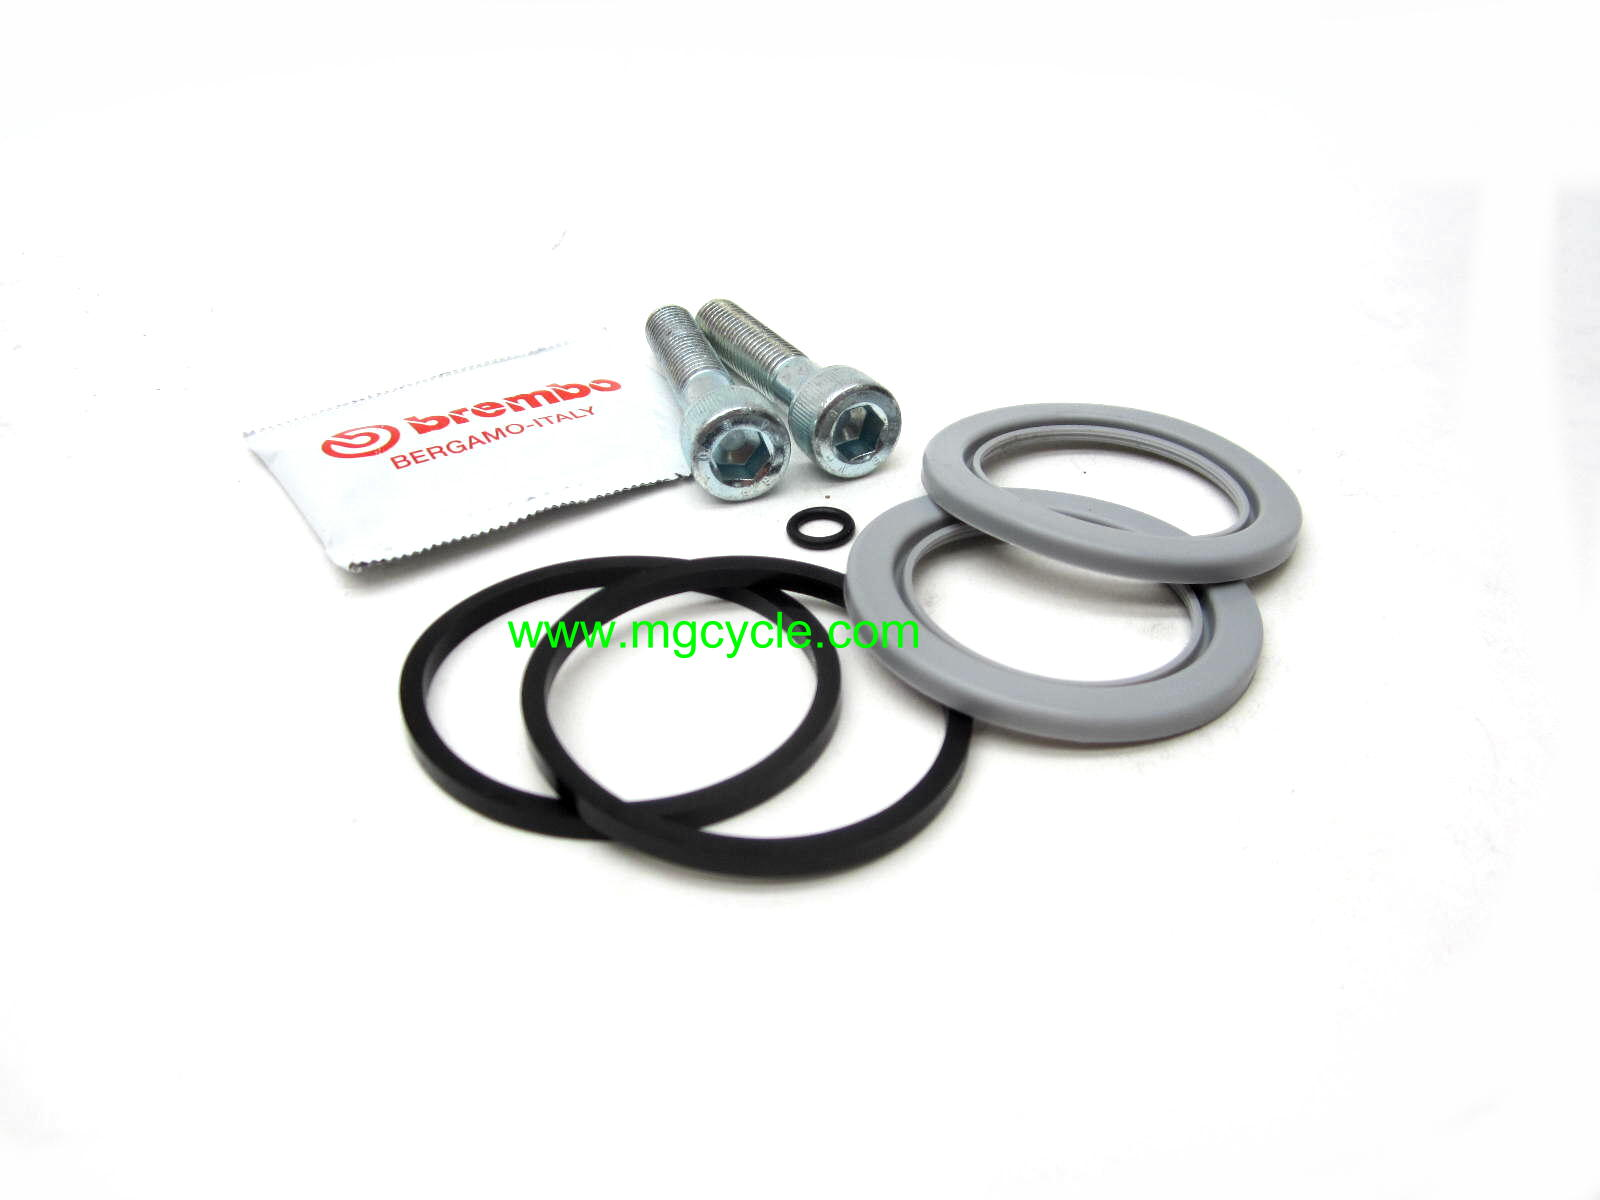 Brembo caliper seal kit for F09 caliper, rear SP1000 GU18659050